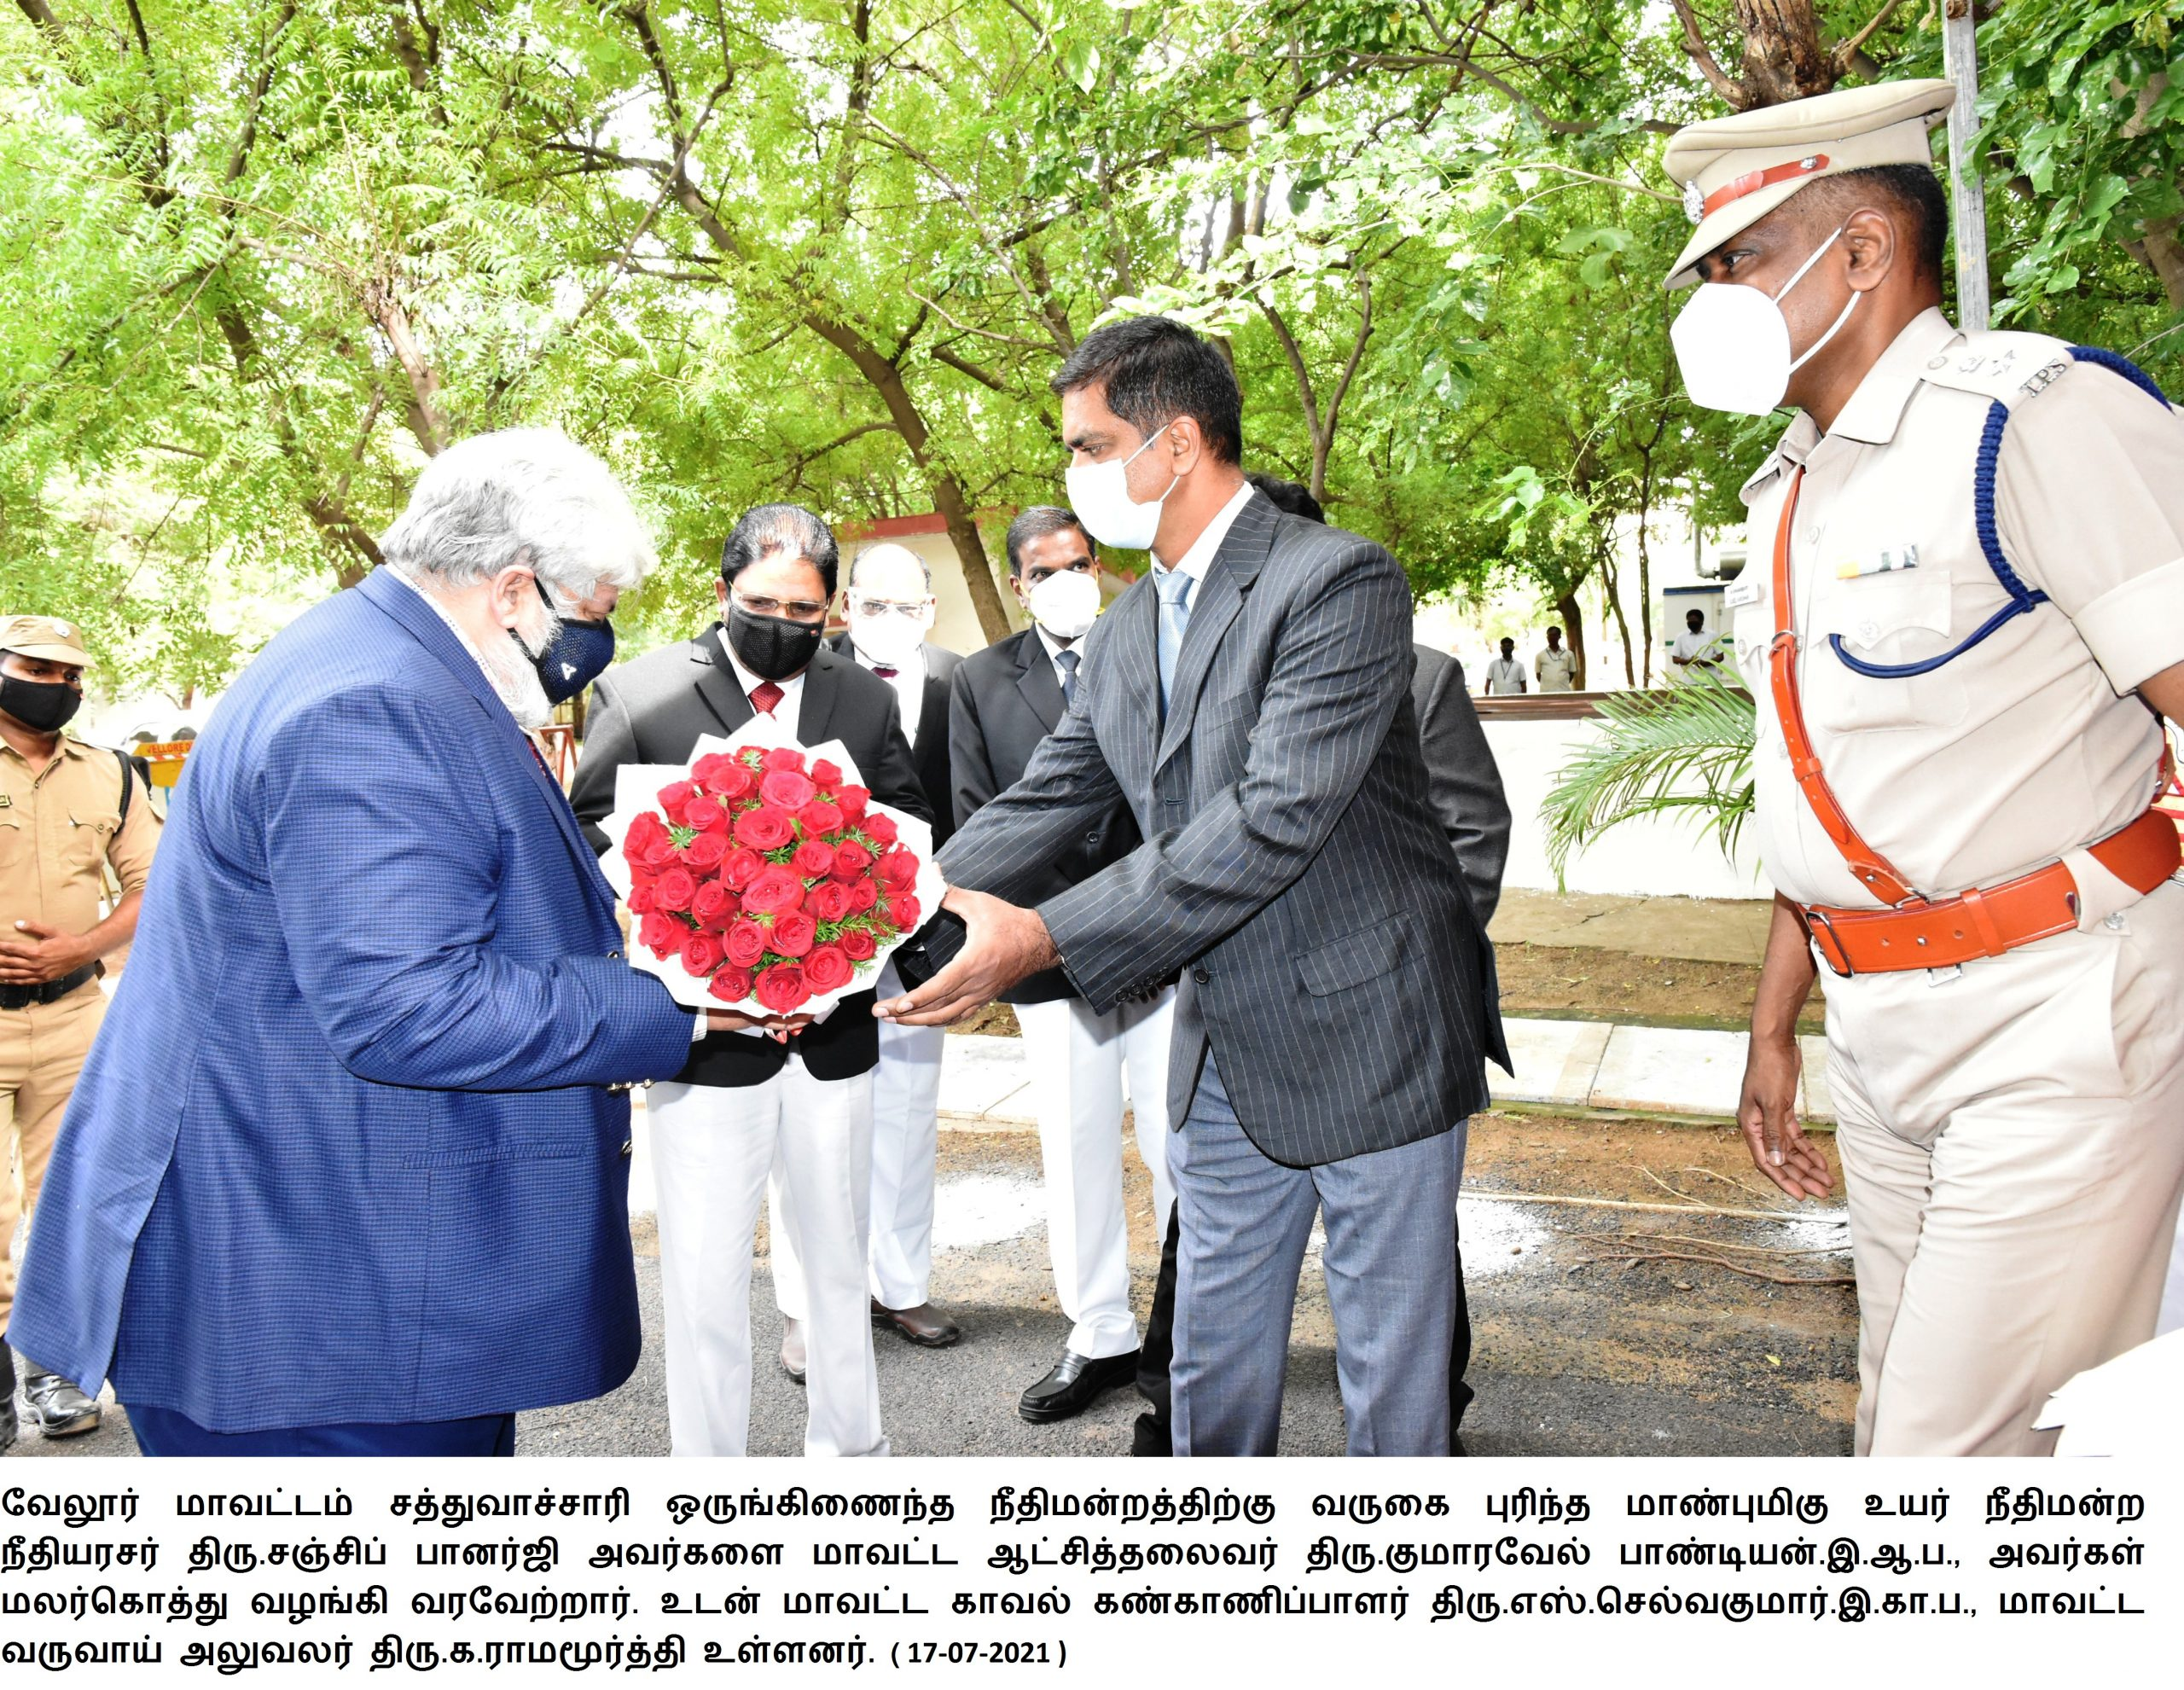 Honorable Chief Justice of Madras High Court Visit to Vellore District 17-07-2021